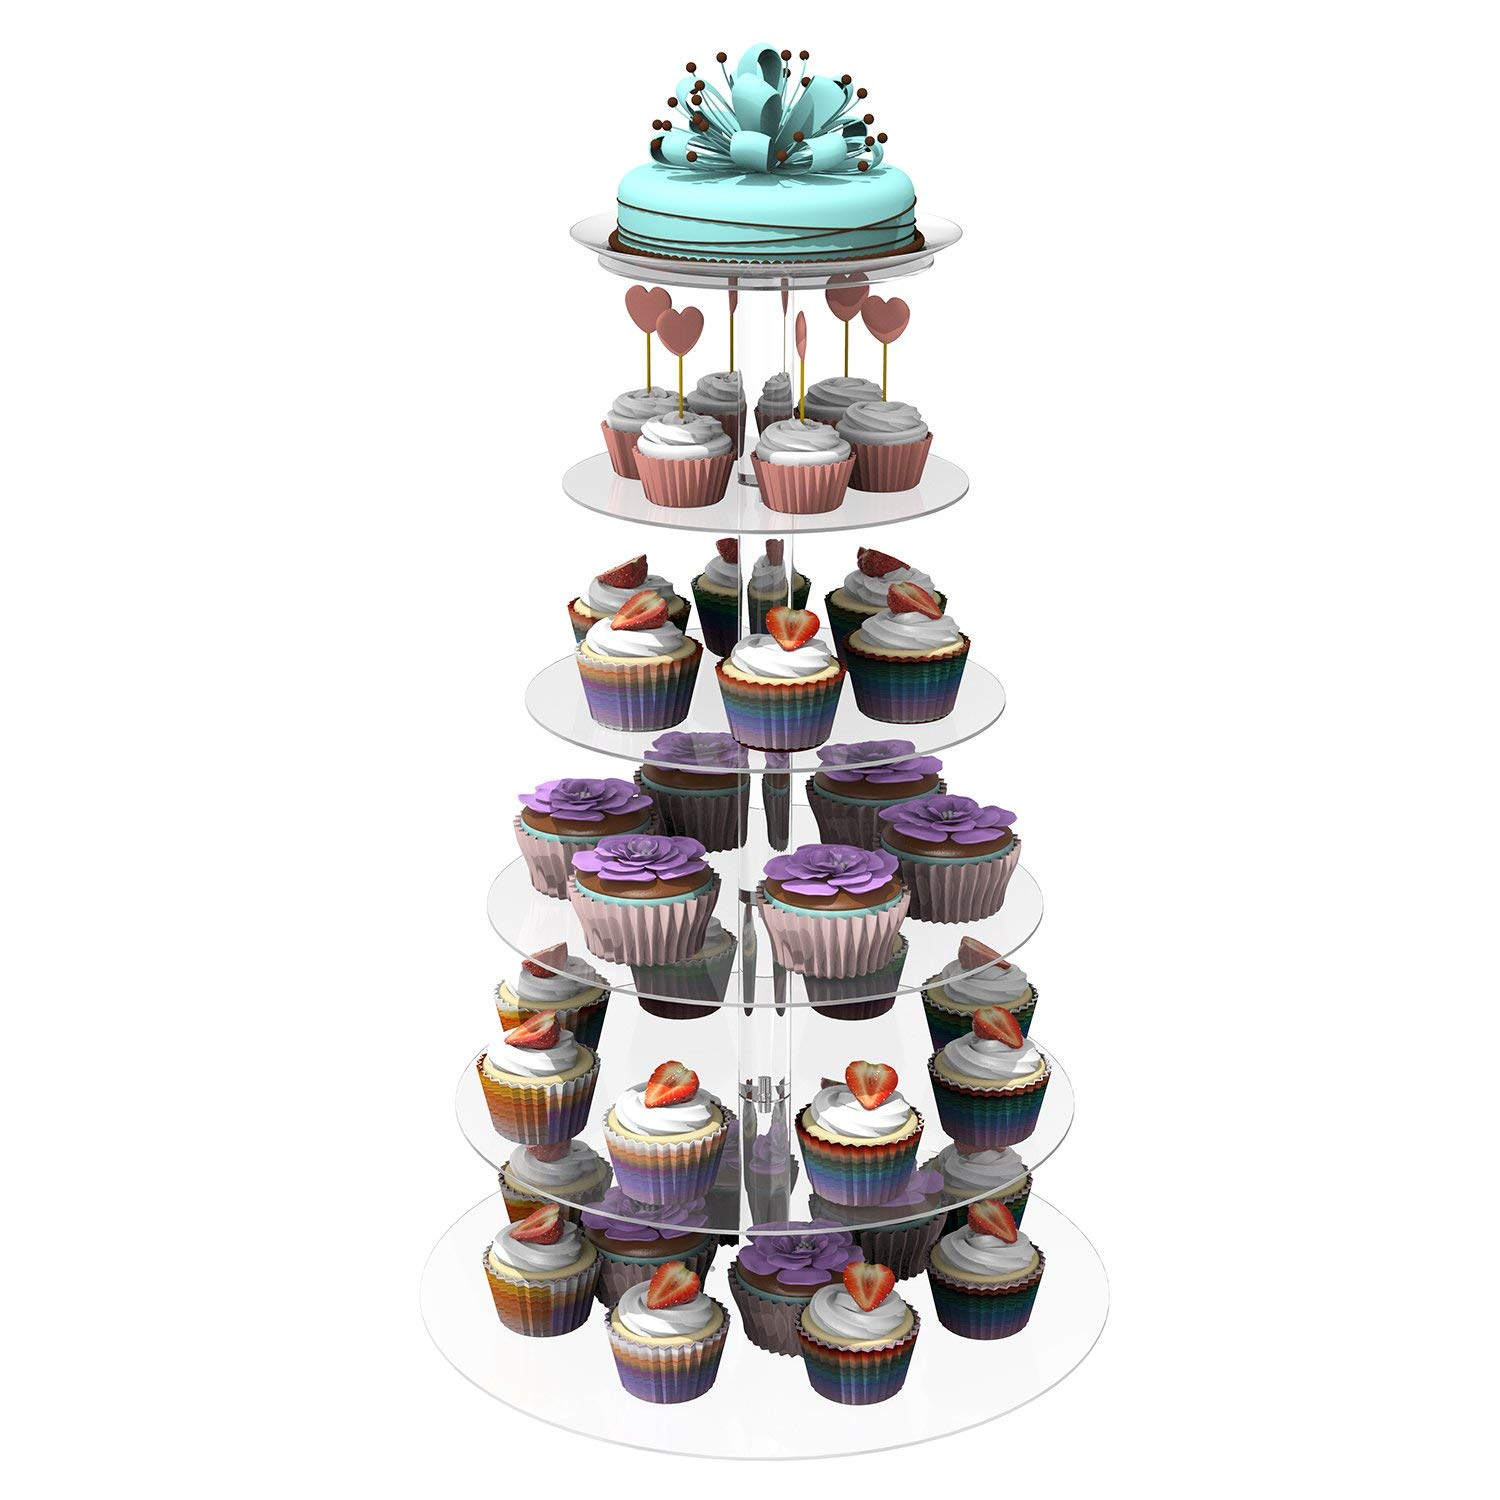 shaofu 6 Tier Round Cupcake Stand, Wedding Party Acrylic Cake Dessert Tower, Food Display Stand (6 Tiers, Clear)